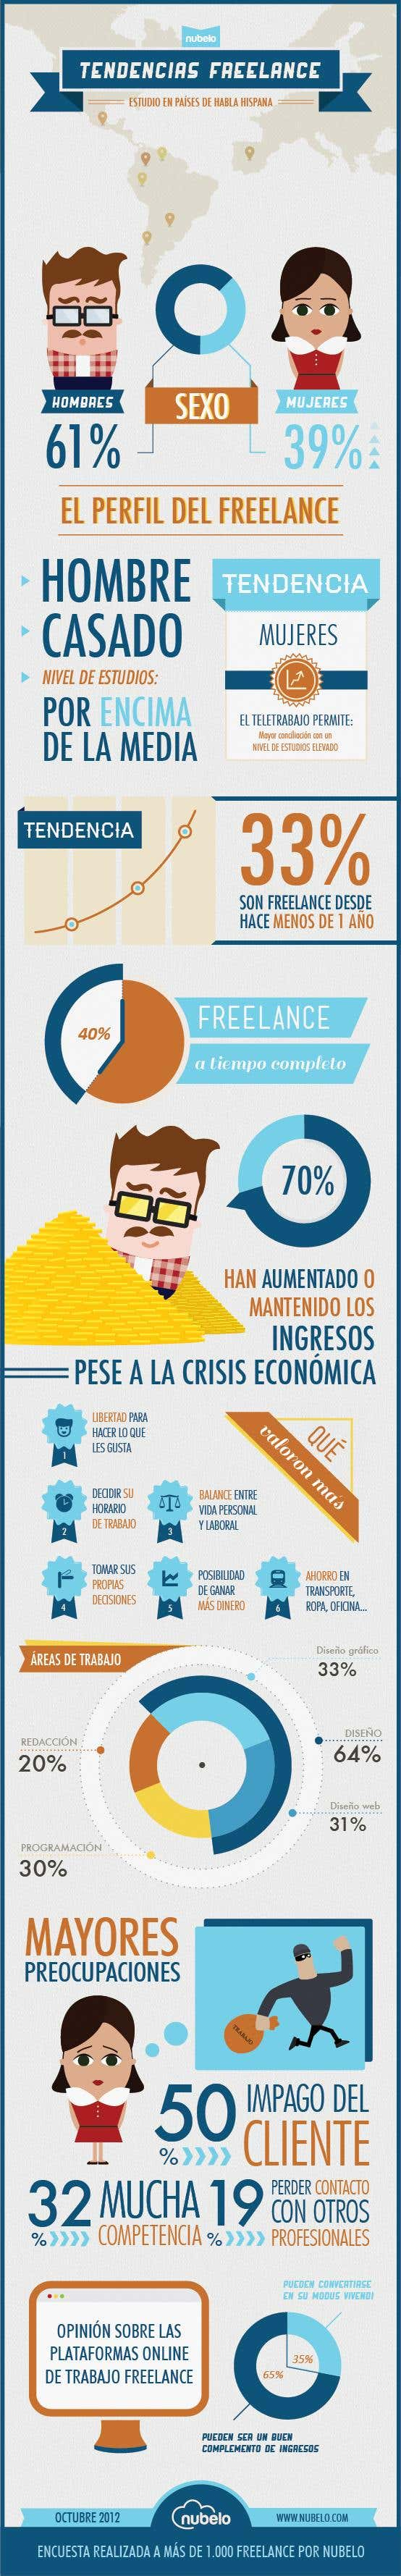 Infográfico tendencias freelance